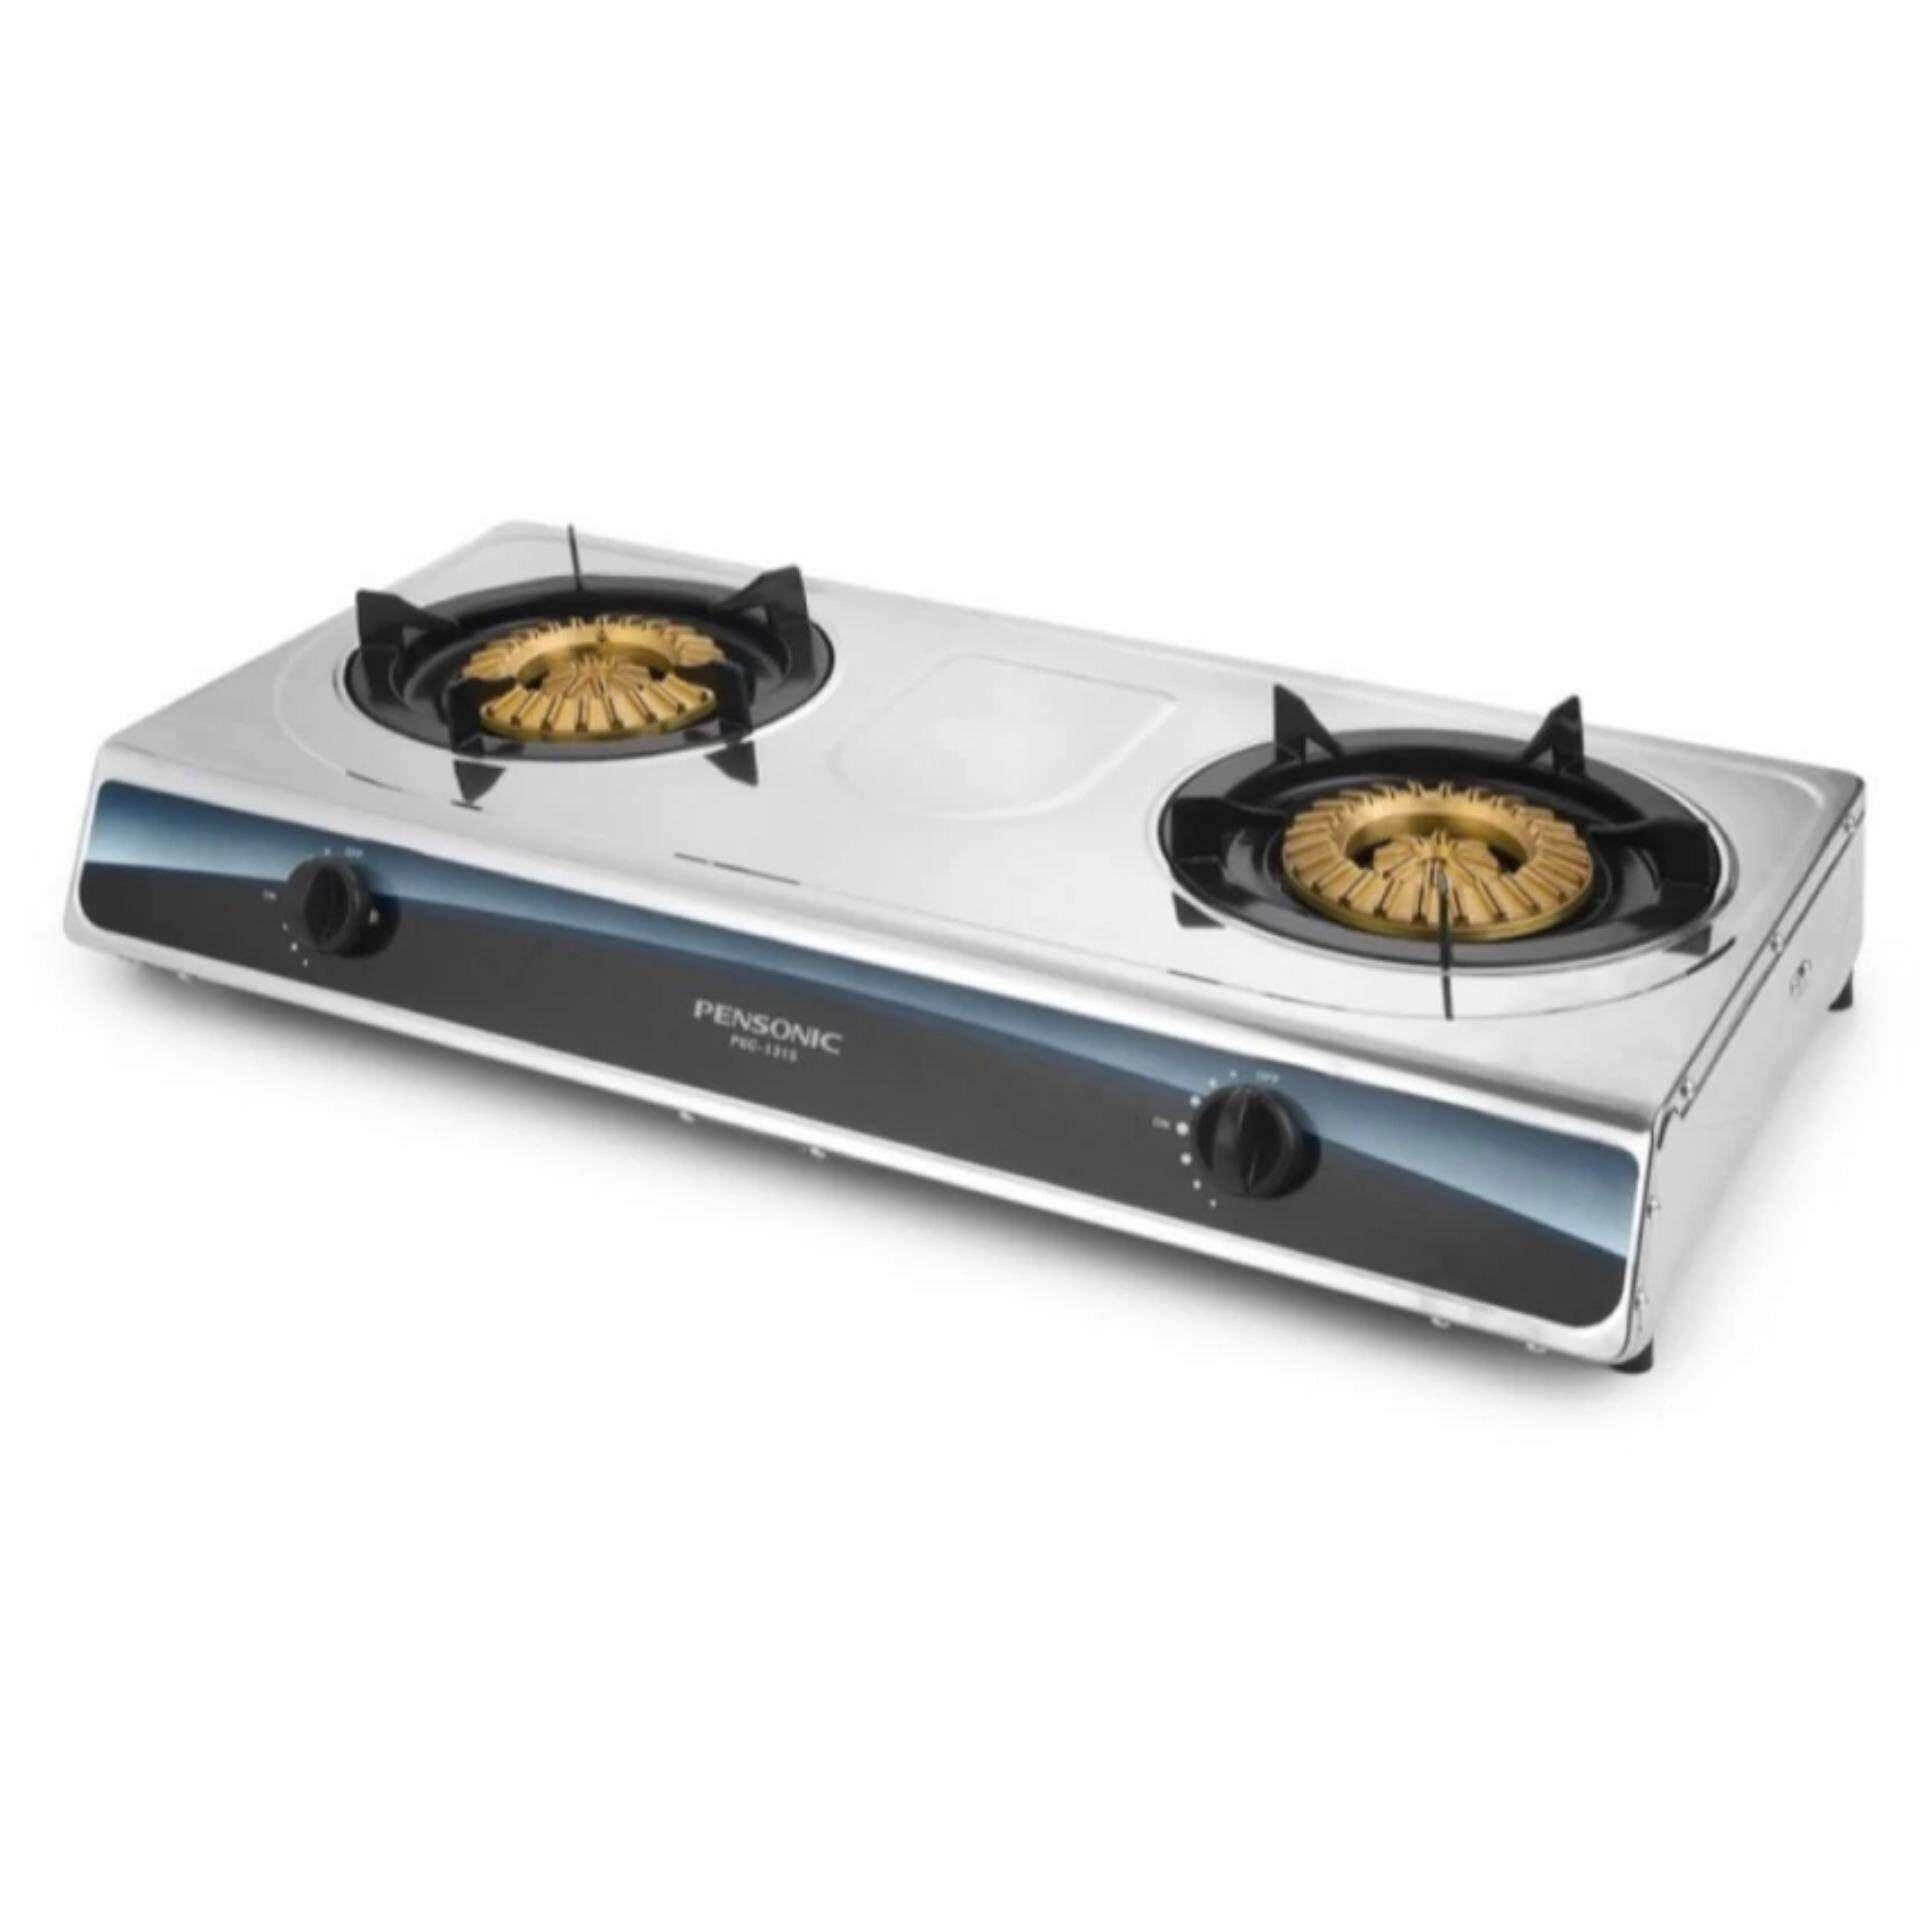 Pensonic PGC-131S Stainless Steel Gas Cooker